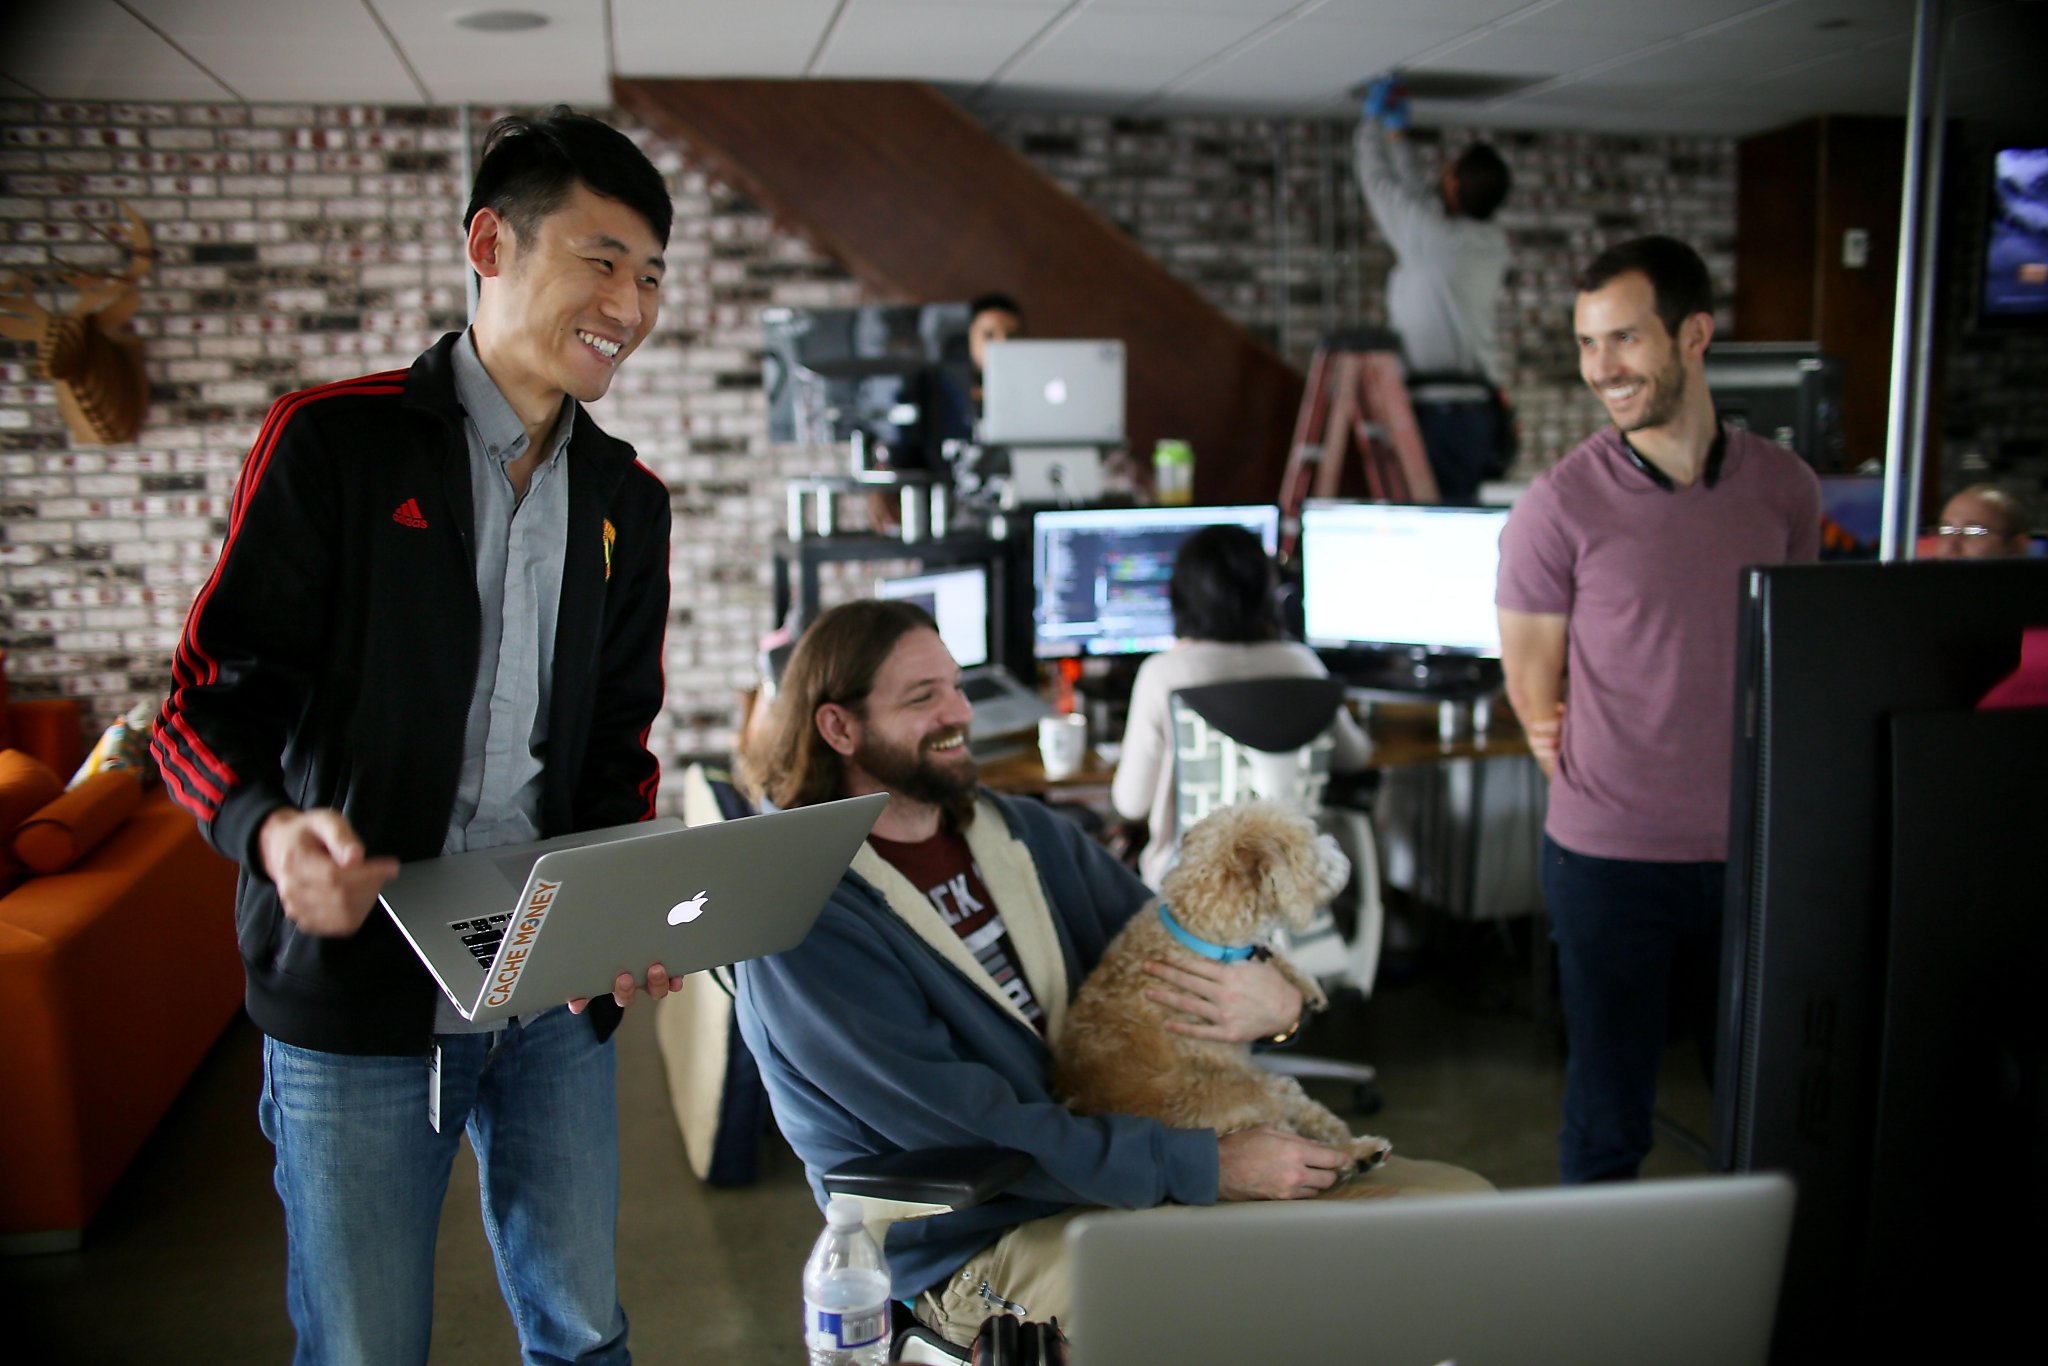 Immigrants Fuel Silicon Valley Startups